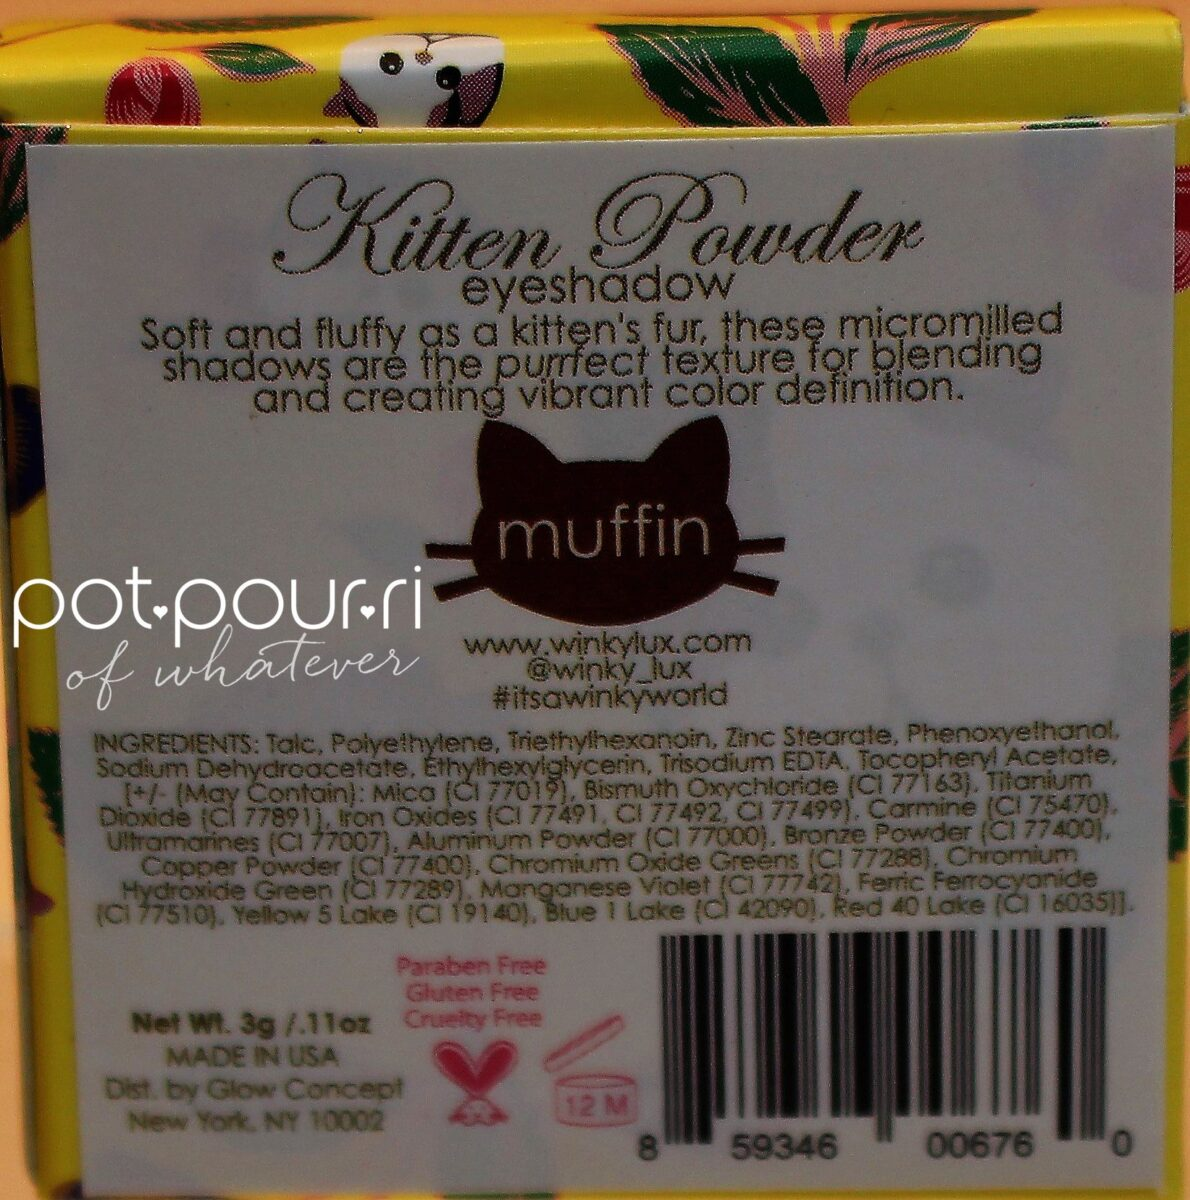 Winky-lux-kitten-powder-eyeshadow-muffin